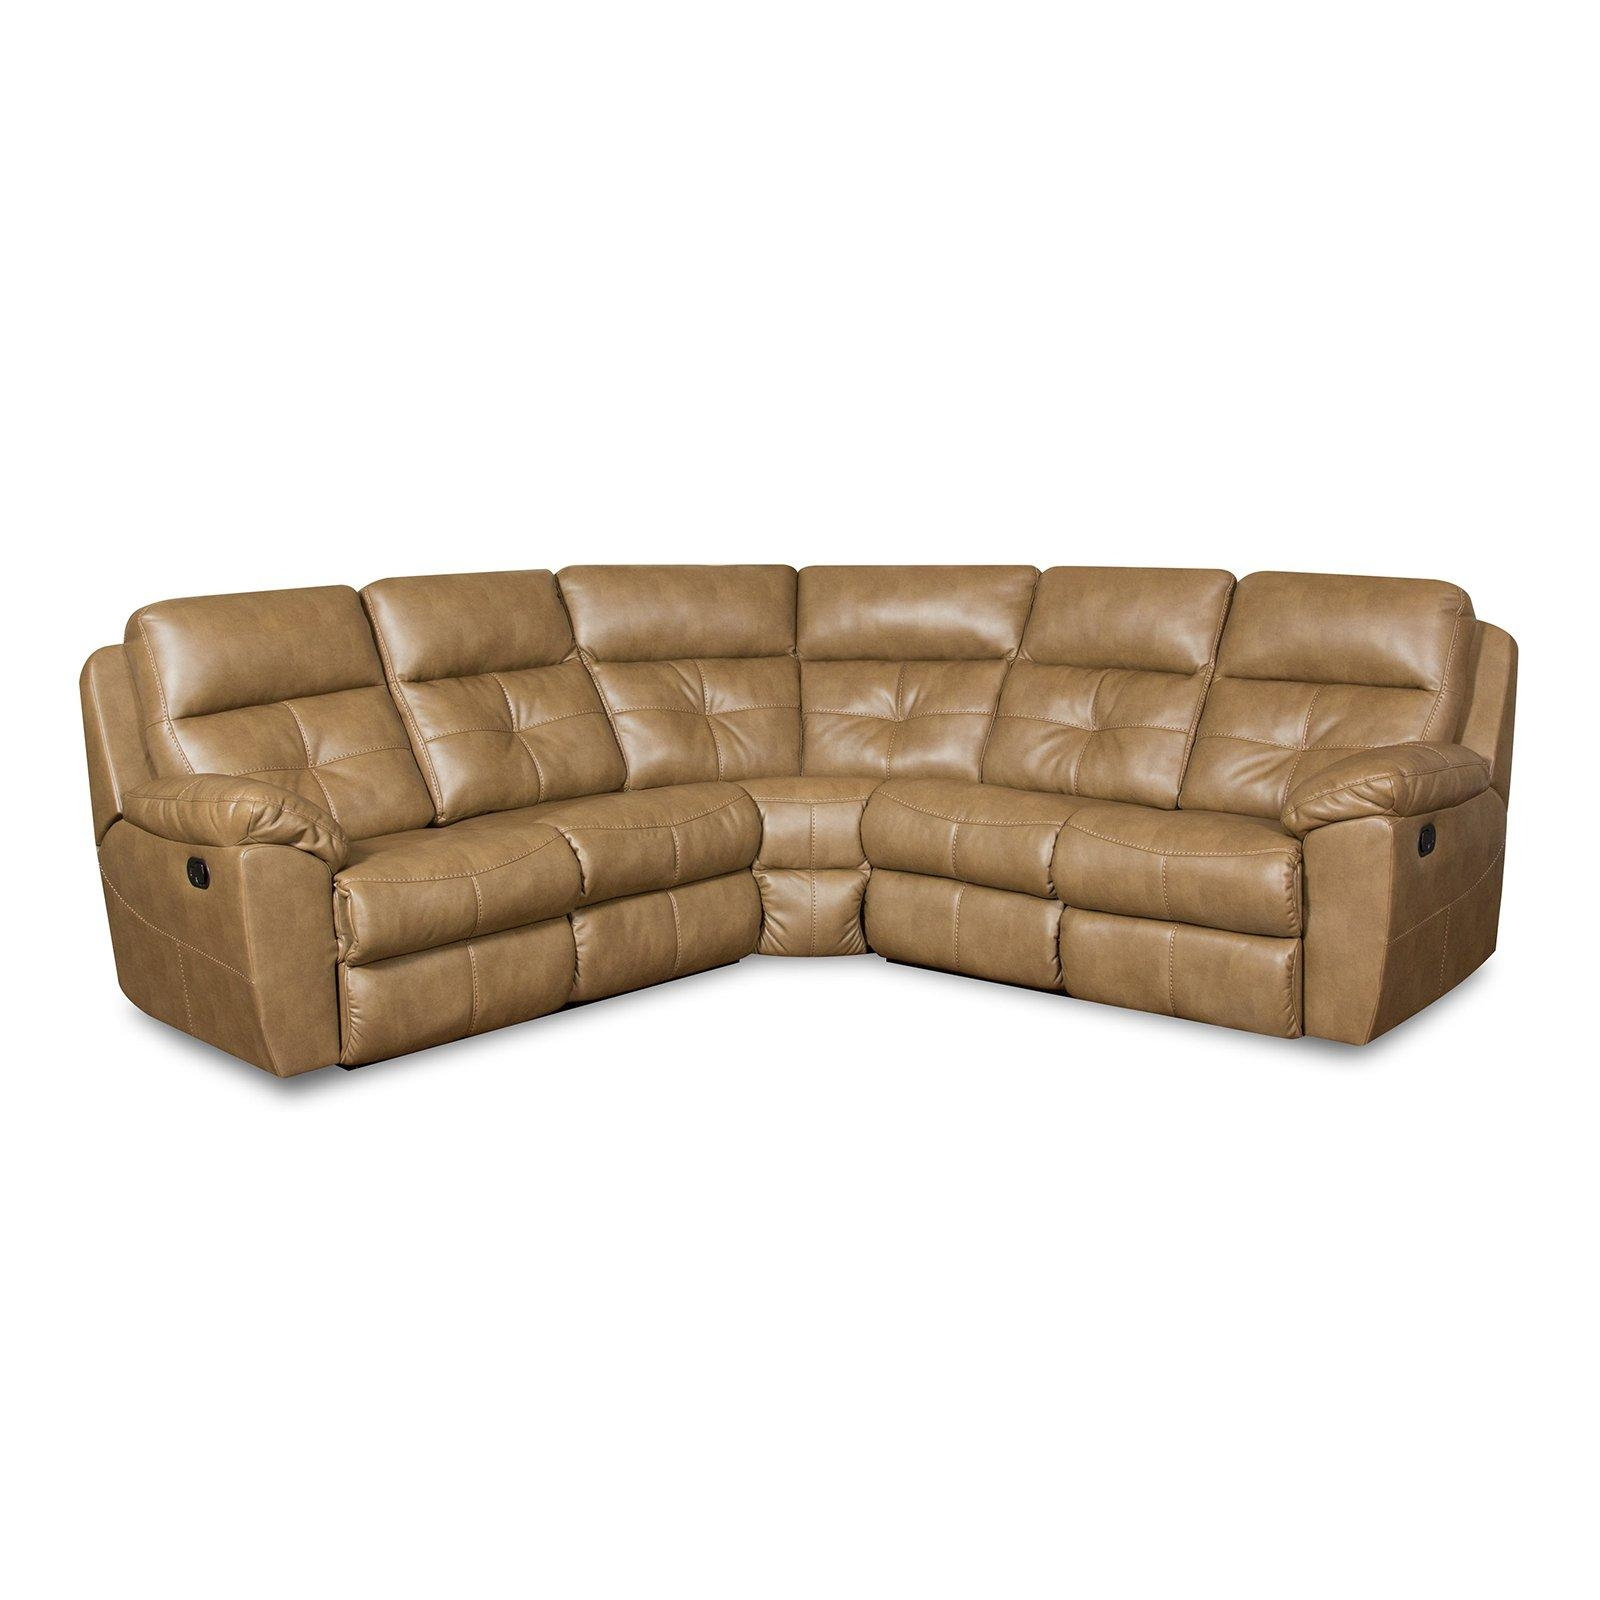 big lots simmons leather sofa room and board craigslist 20 photos sectional sofas ideas